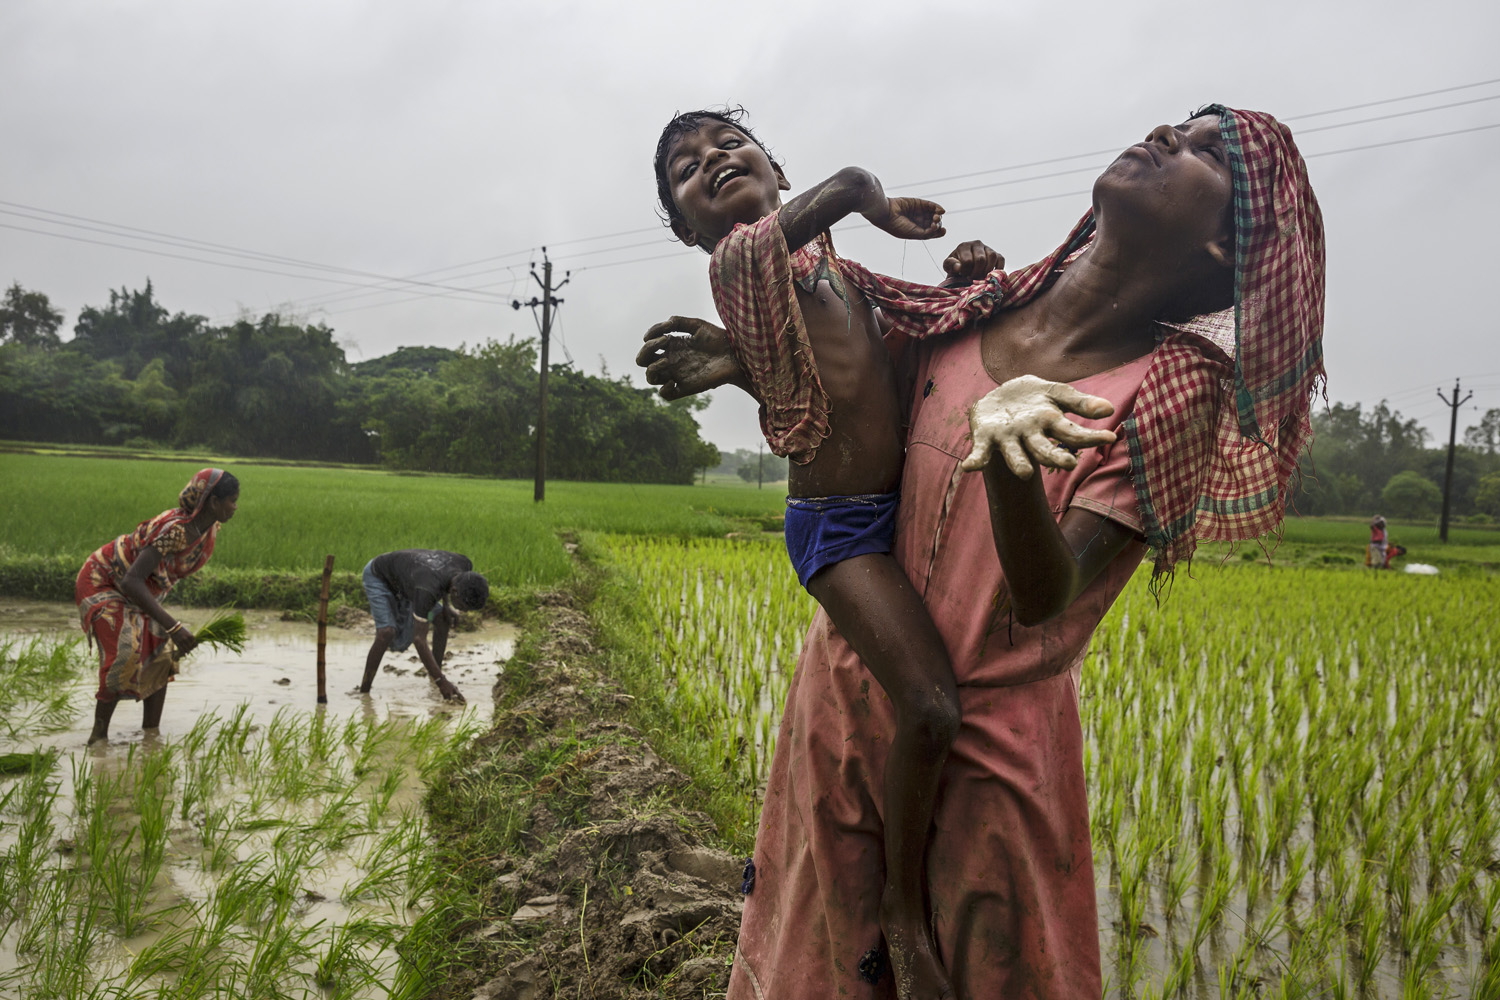 Sisters Sonia, right, and Anita Singh, who are both blind, let rain fall on their faces as their parents work nearby